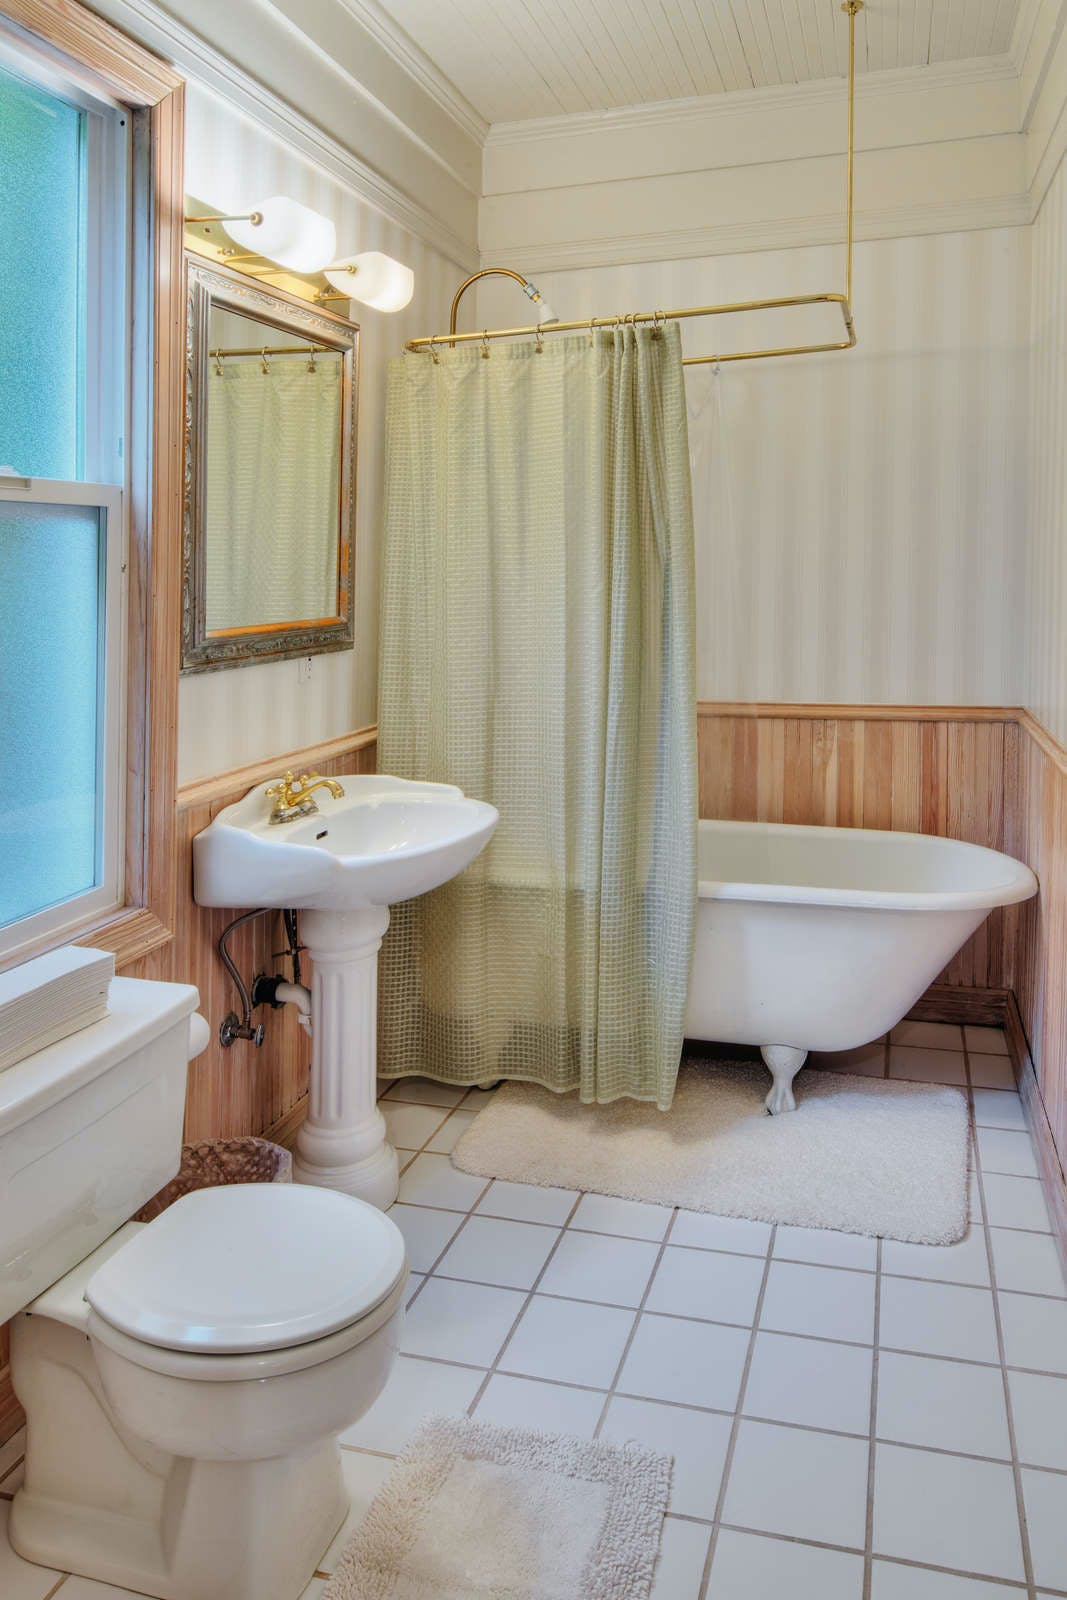 Bed & Breakfast Inn Seattle - Shared Bathroom